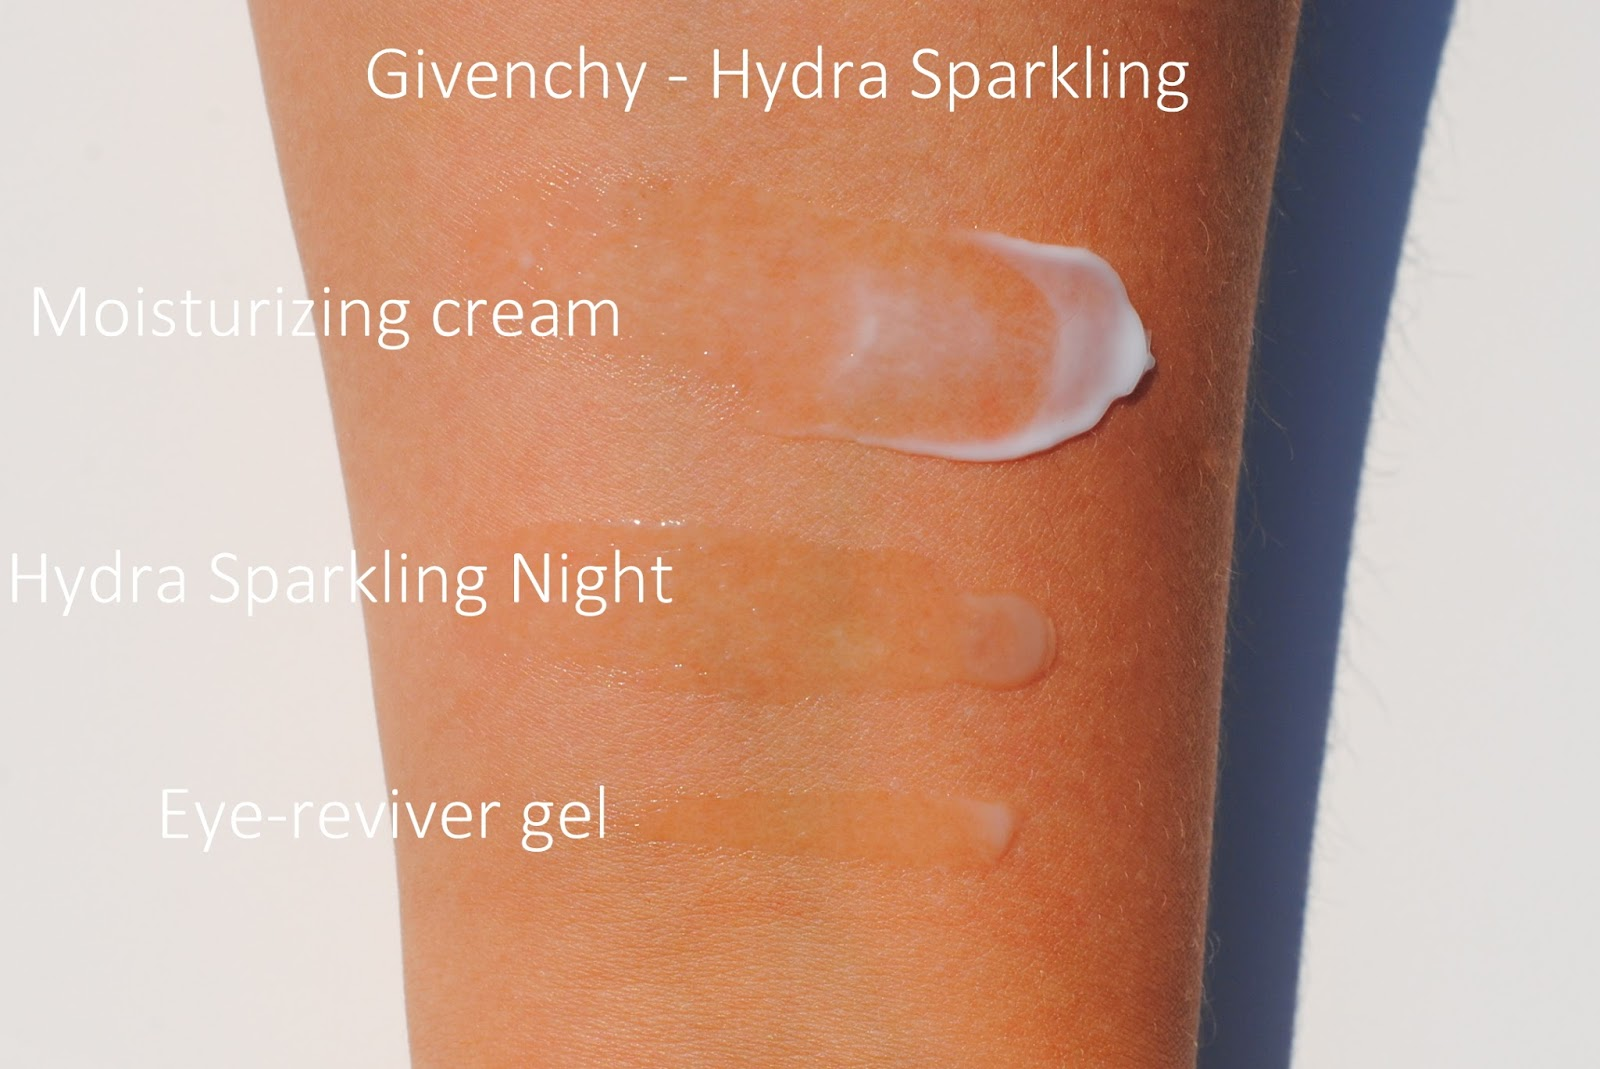 givenchy hydra sparkling swatches moisturizer eye cream night mask